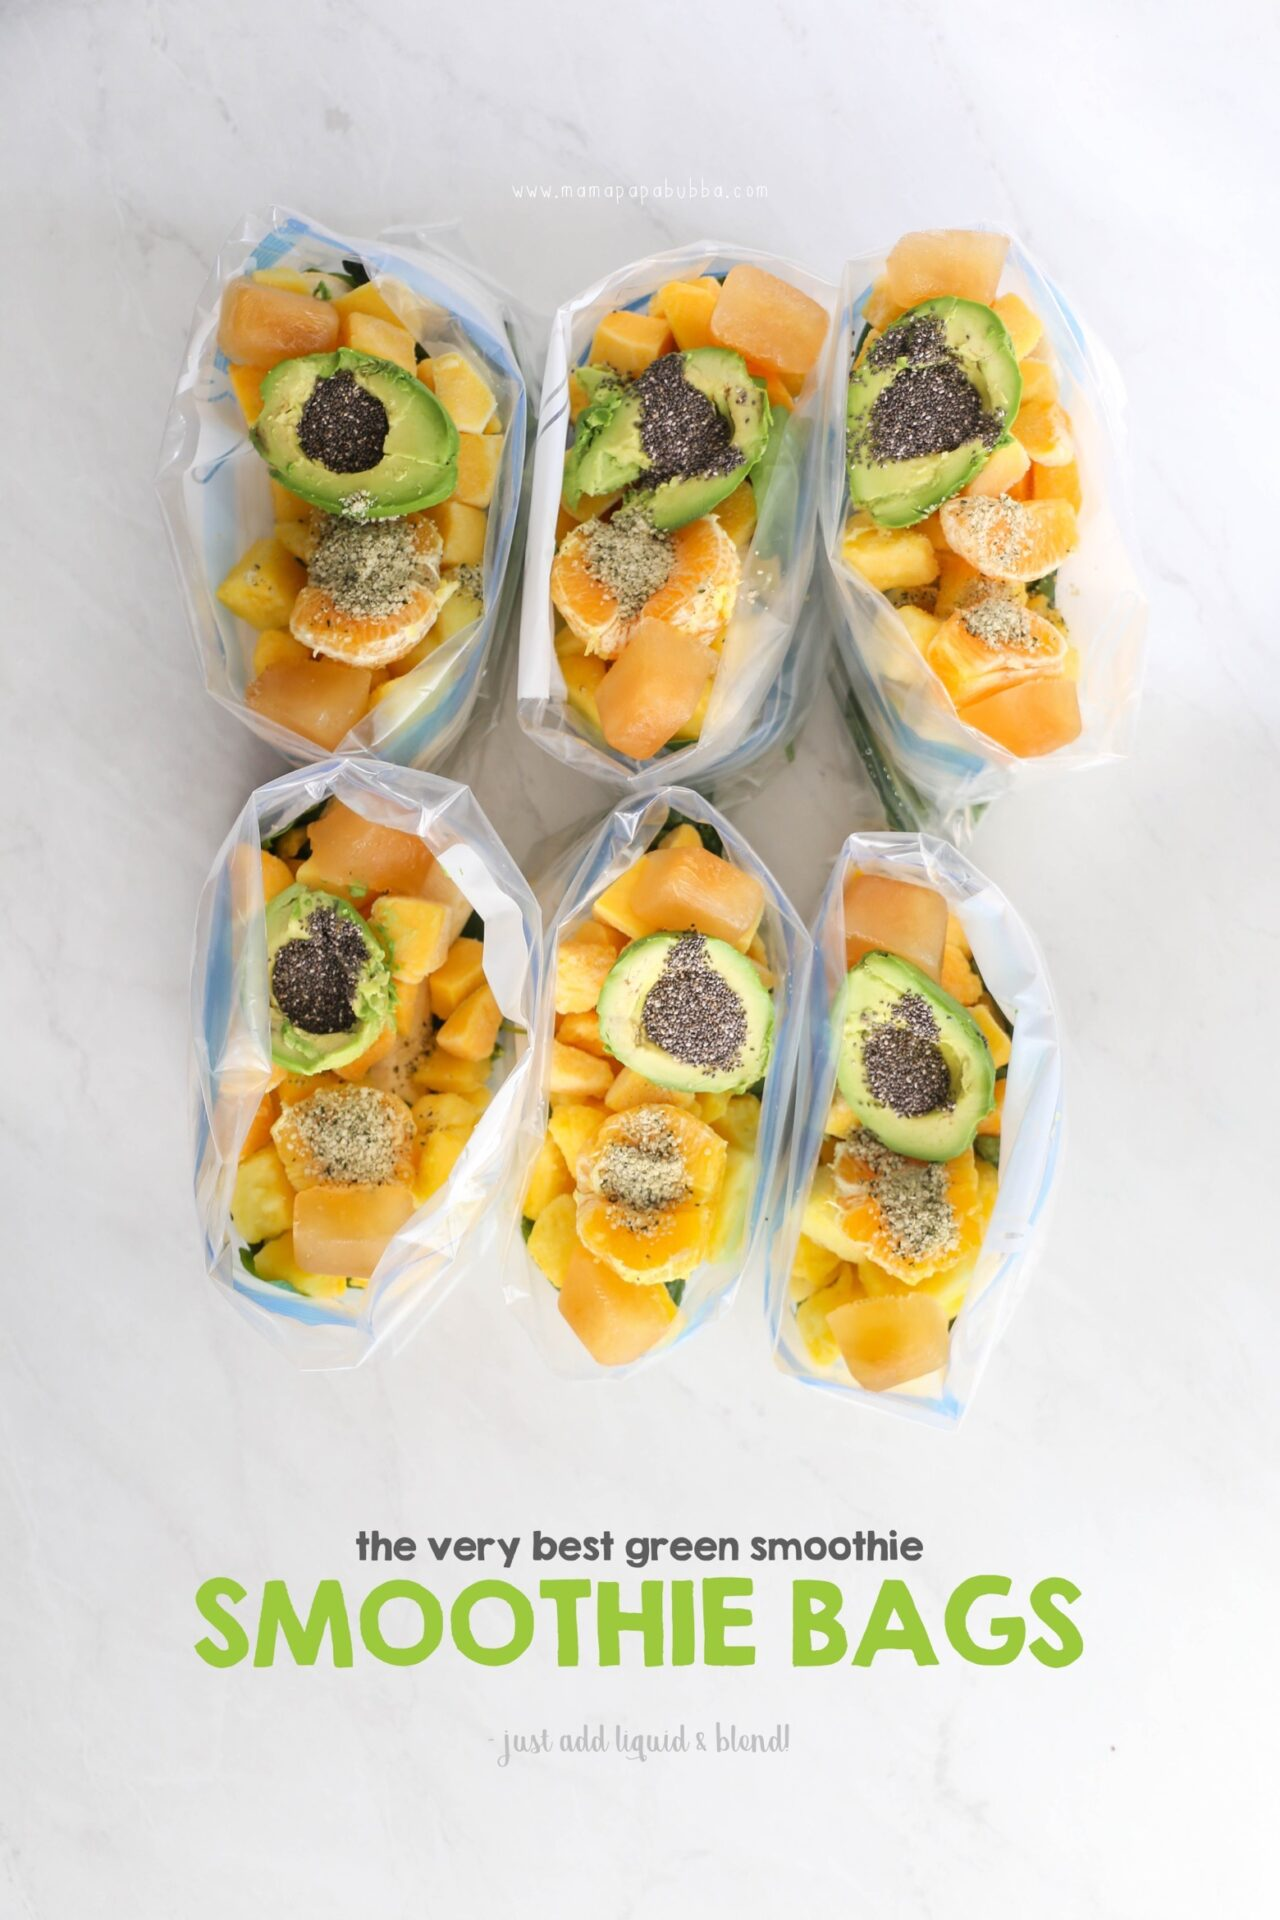 The Very Best Green Smoothie Smoothie Bags | Mama Papa Bubba